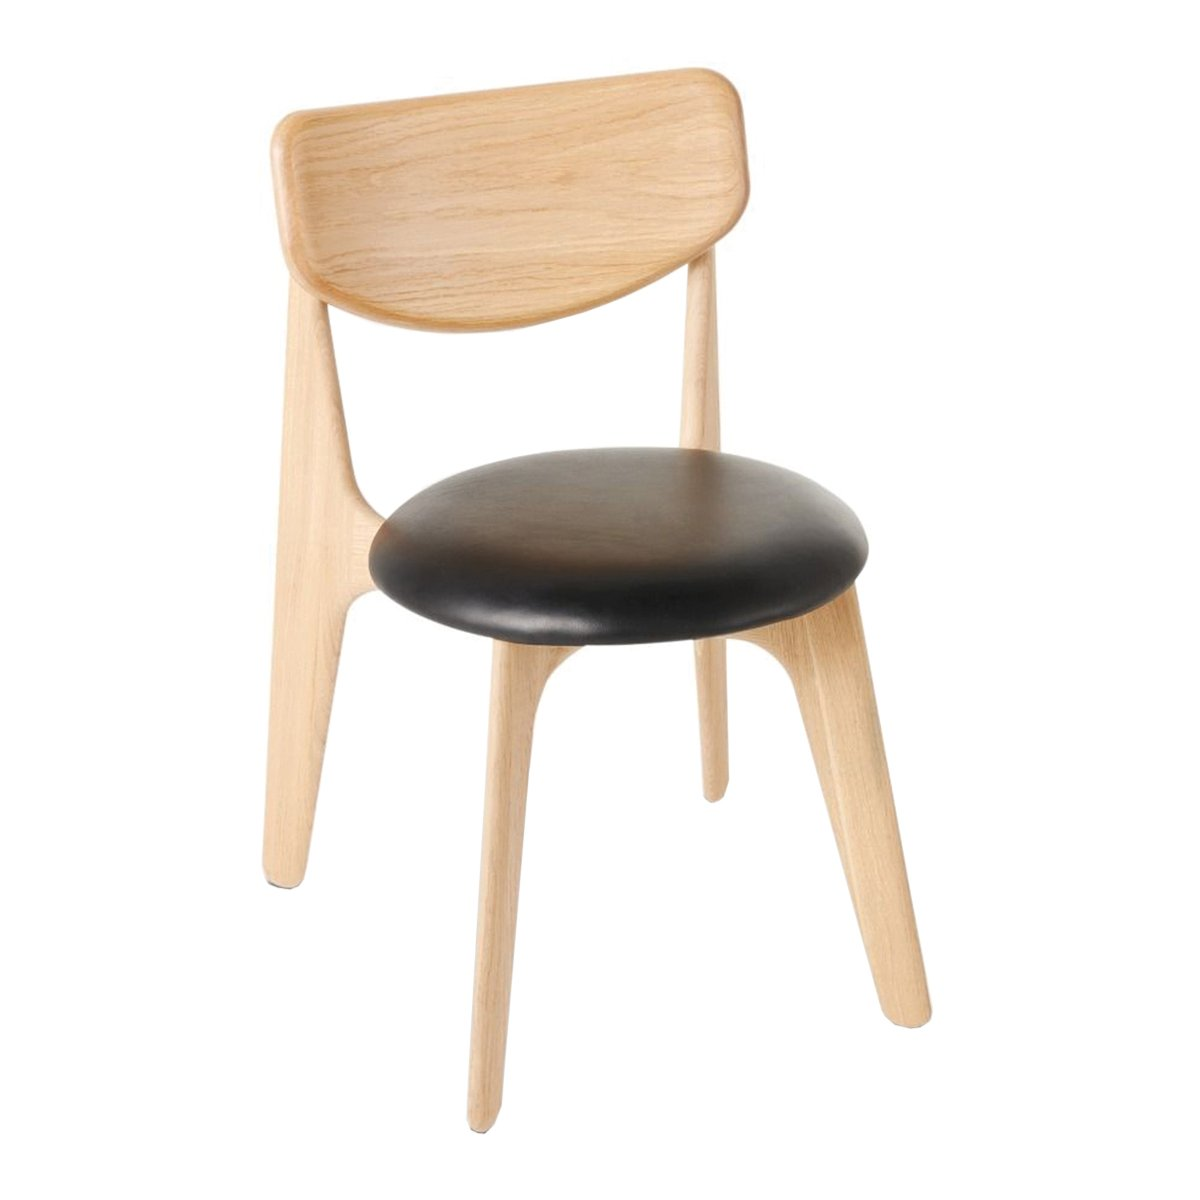 Slab Chair Naturel Eiken - Lederen Zitting - Tom Dixon